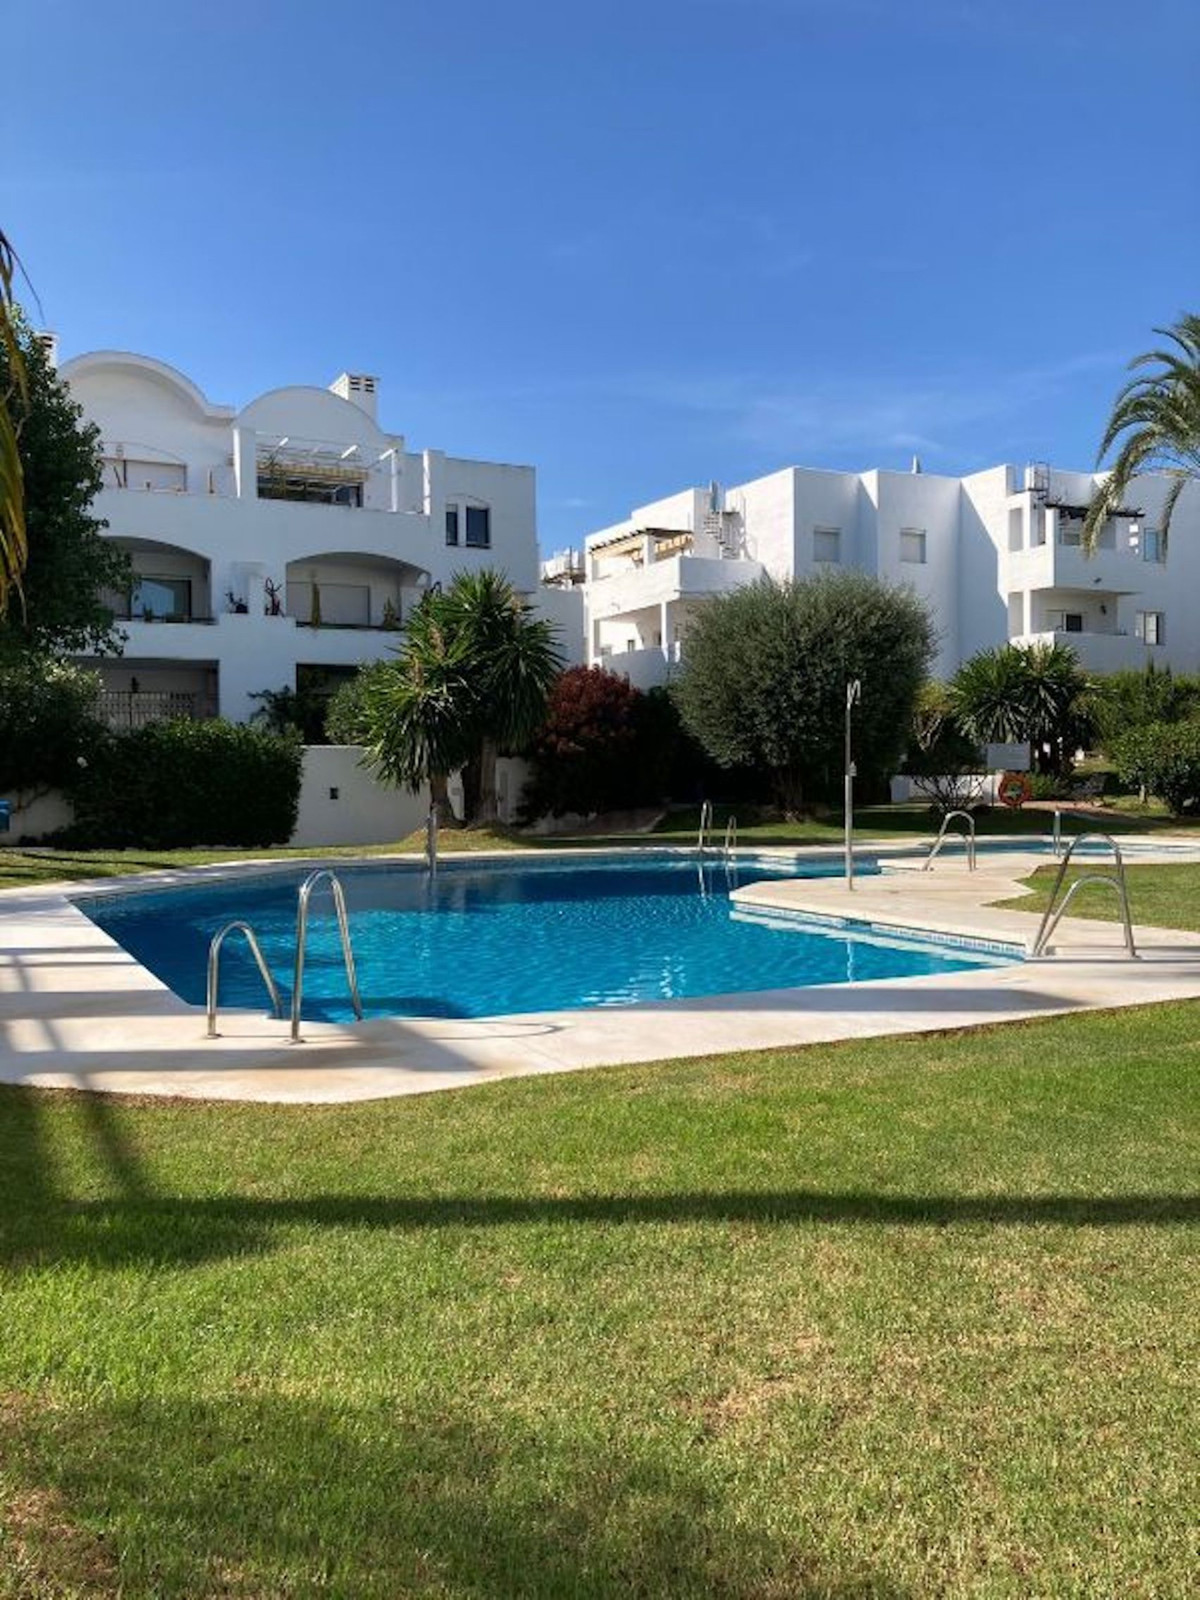 BEAUTIFUL APARTMENT LOCATED IN URB. EL PARAISO JUST ONE WALK FROM THE SEA AND IN WHICH WE CAN WALK T,Spain